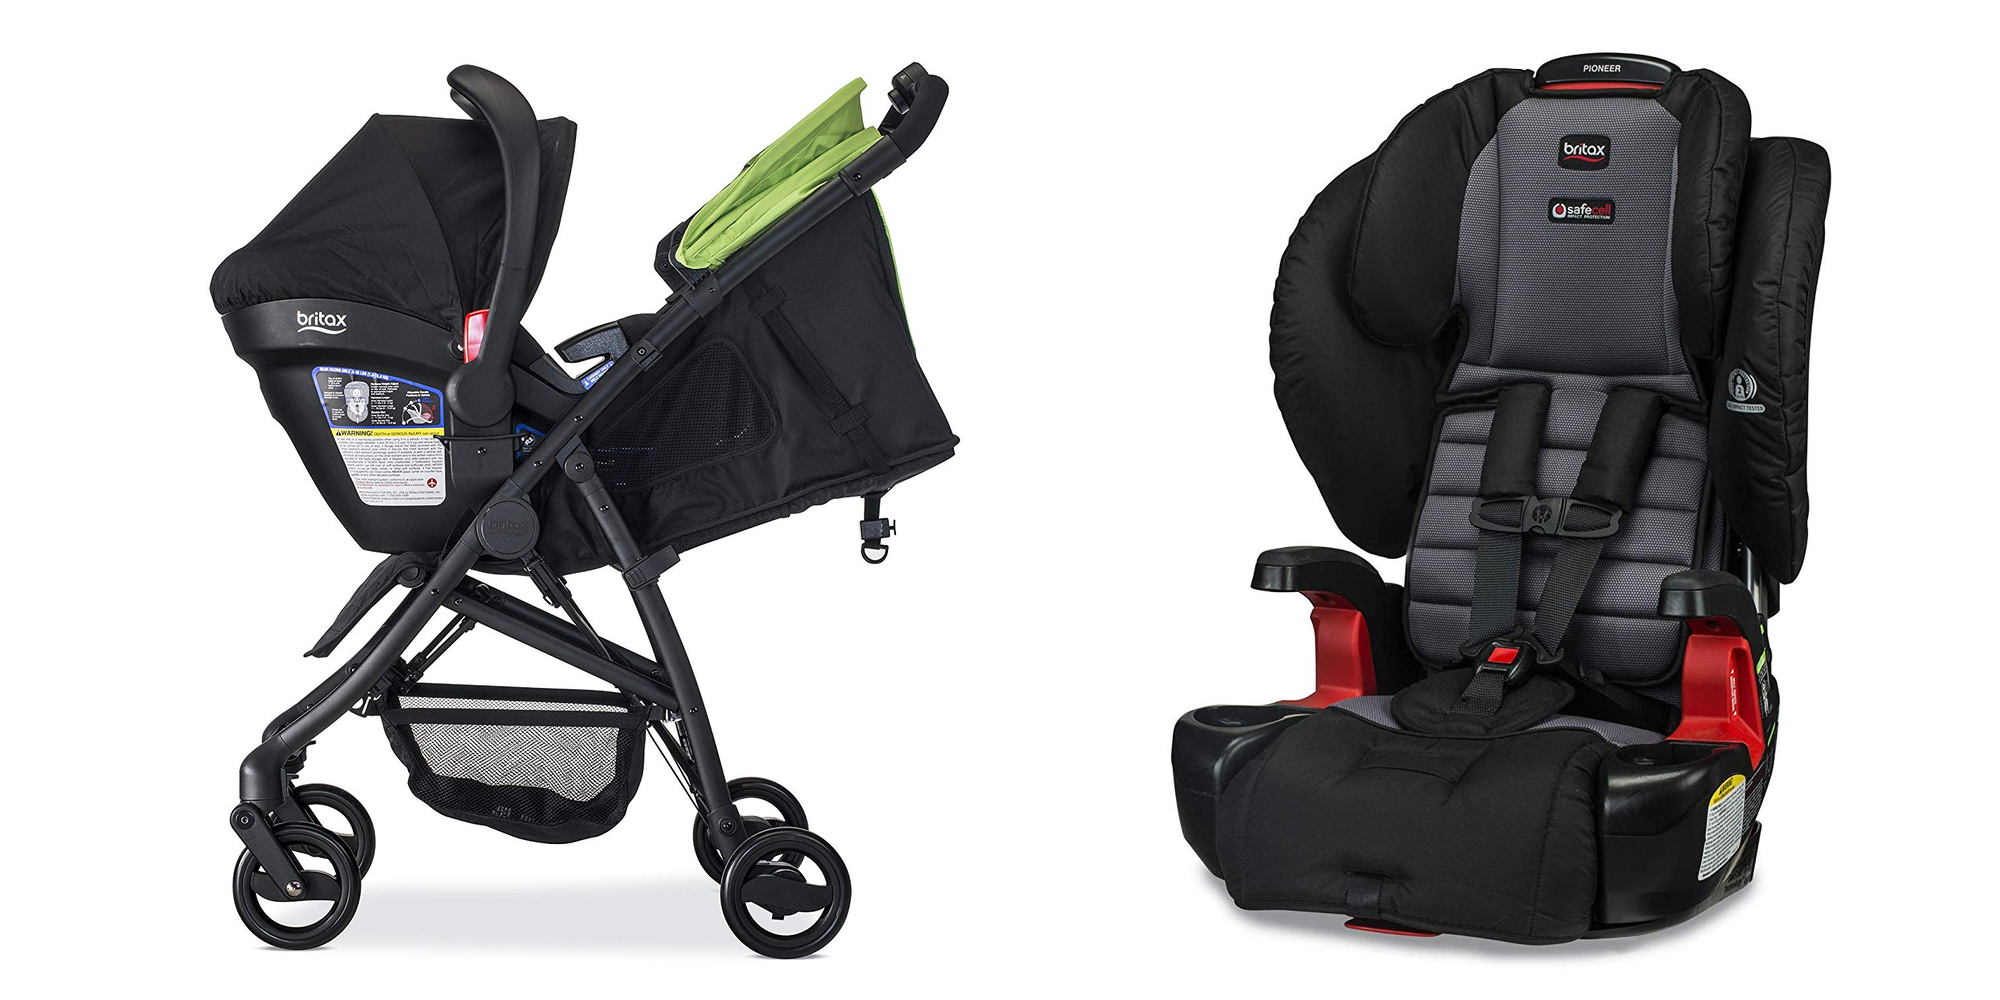 Today Only Save Up To 30 On Select Britax Car Seats And Strollers